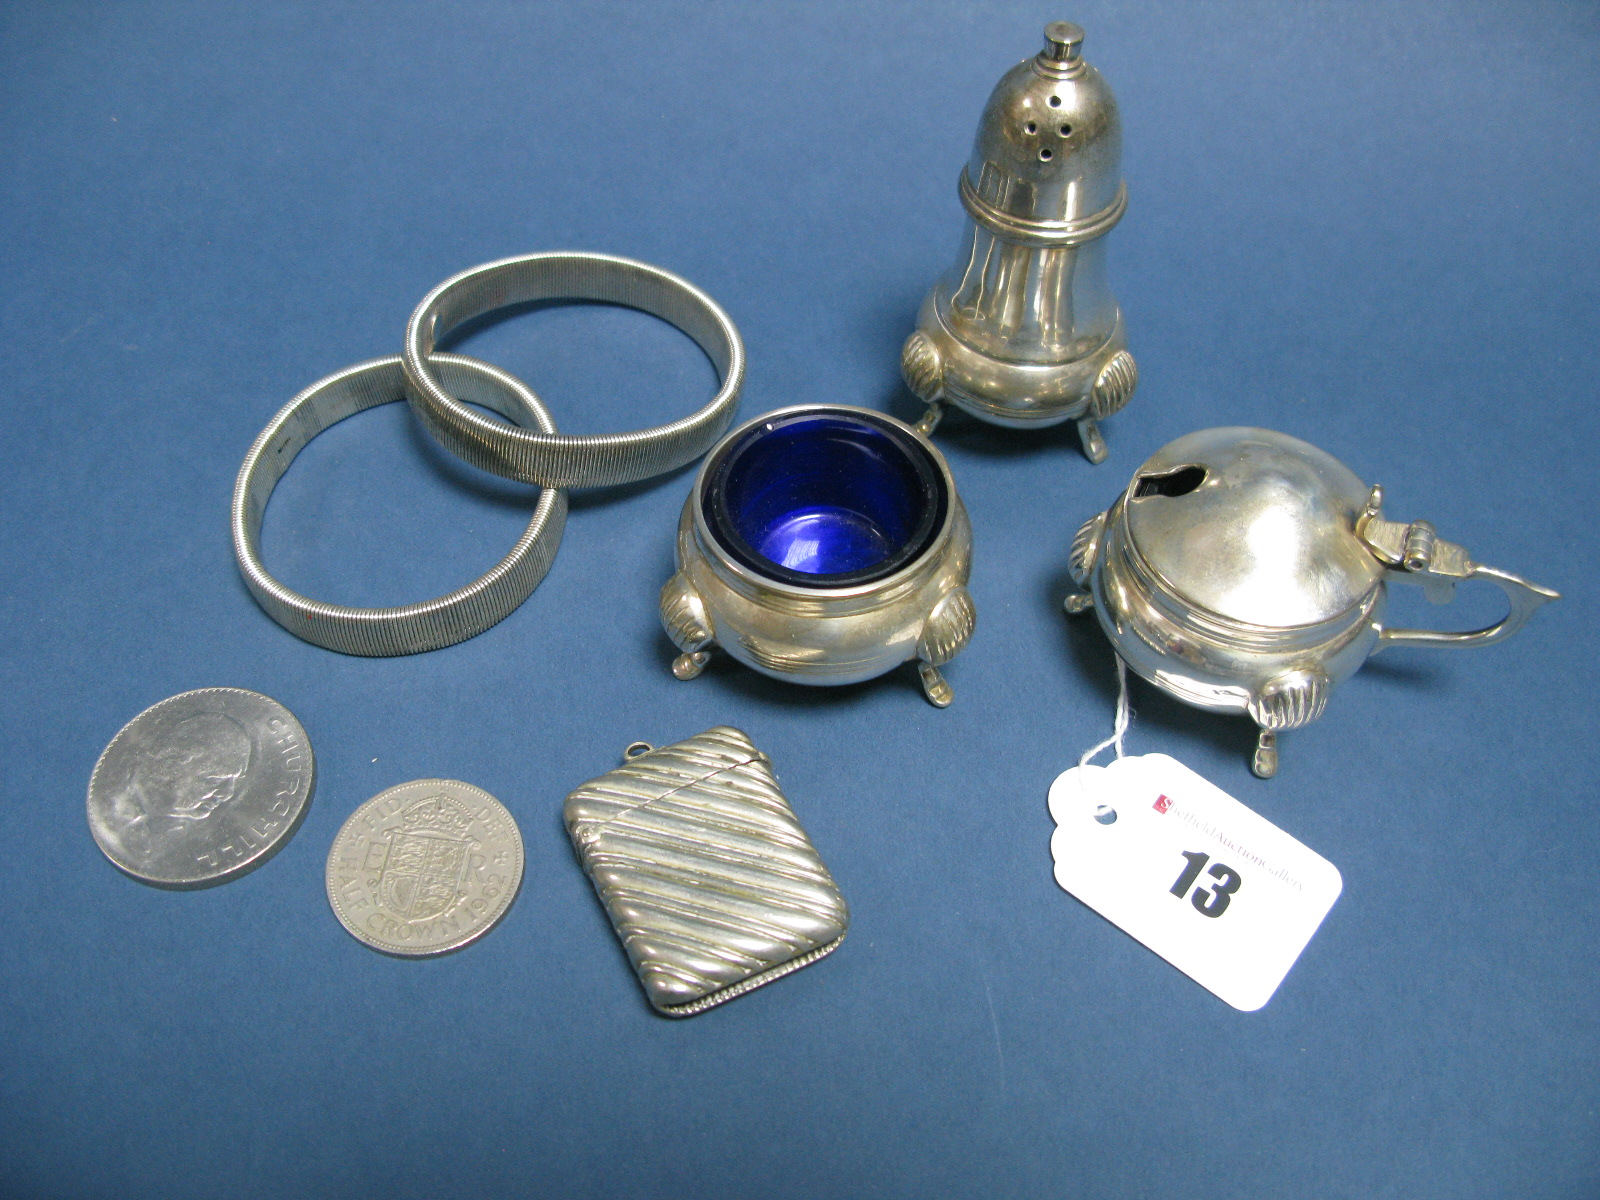 Lot 13 - A Three Piece Plated Cruet, a vesta case allover detailed in relief, coins, etc.